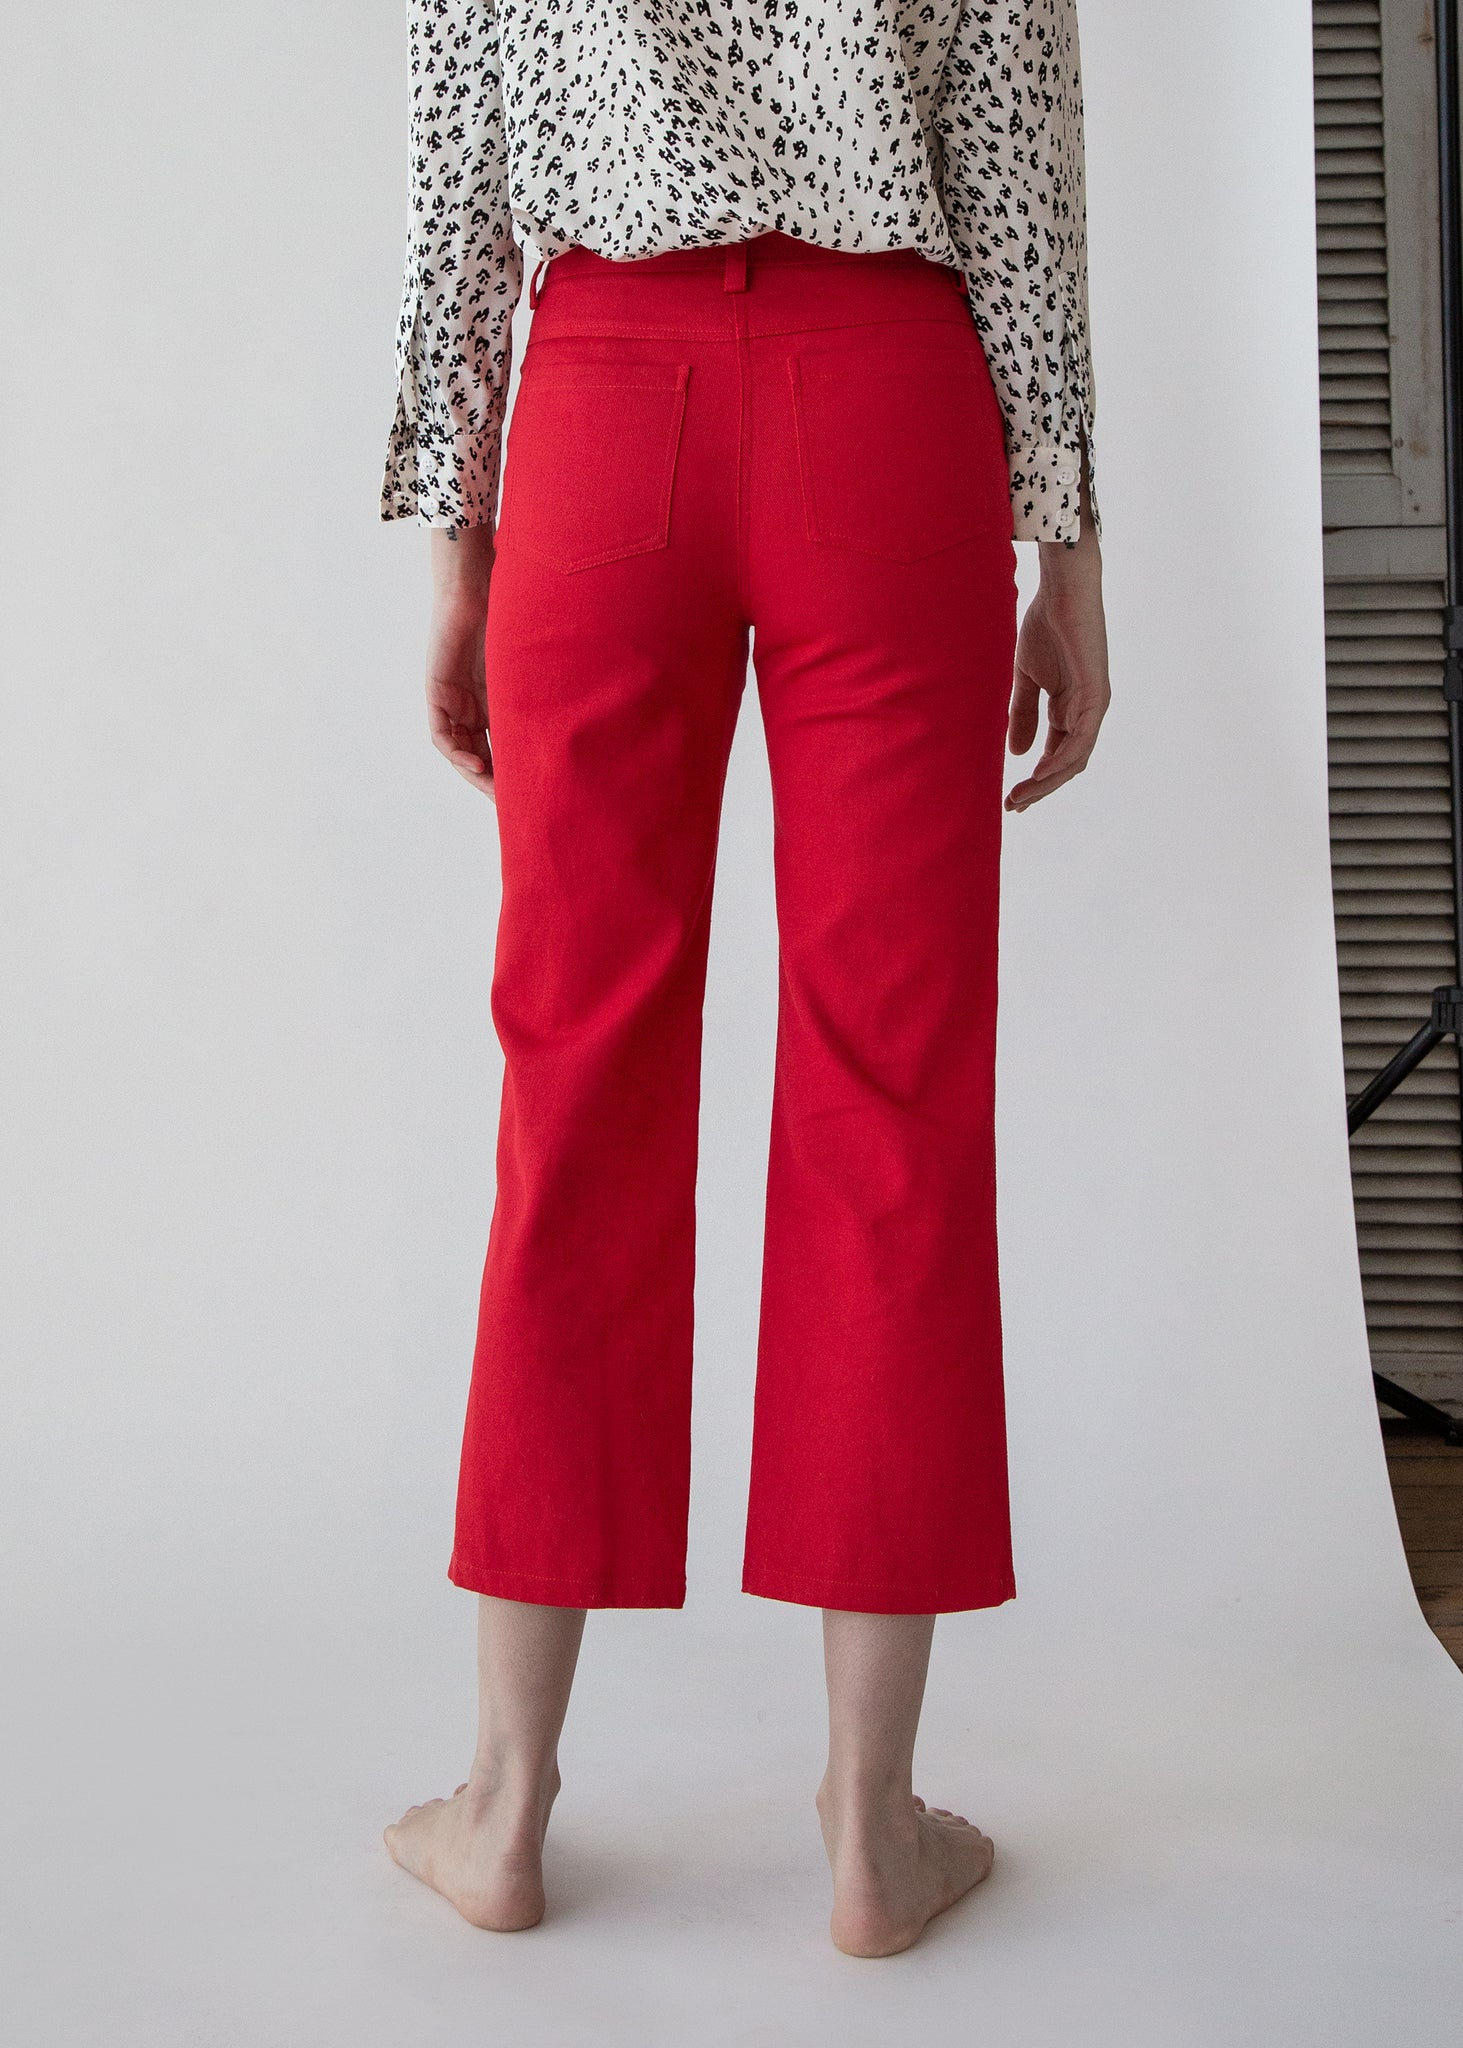 Tuesday Jean in Solid Red Twill